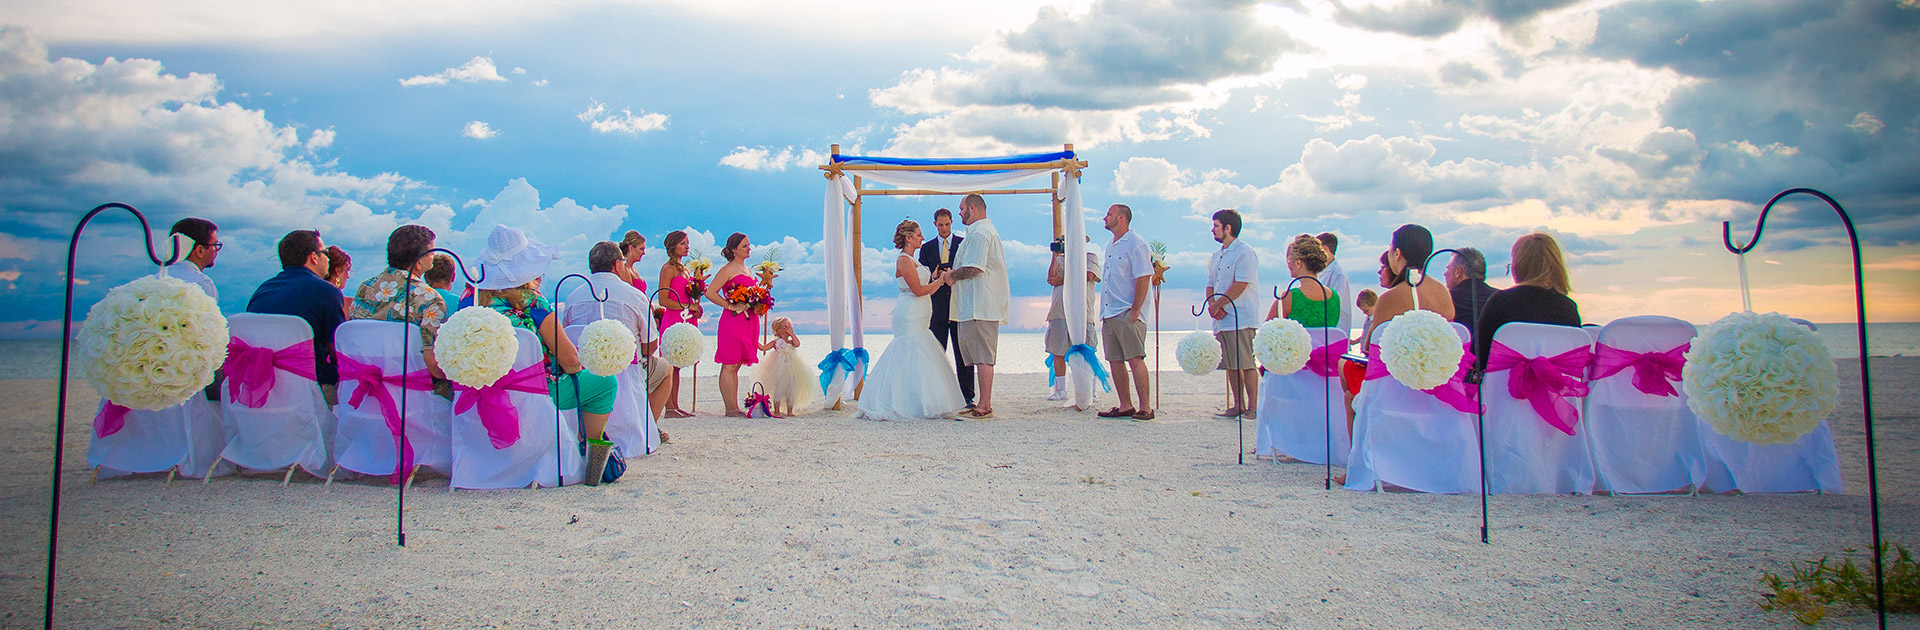 florida beach wedding packages: 727-475-2272